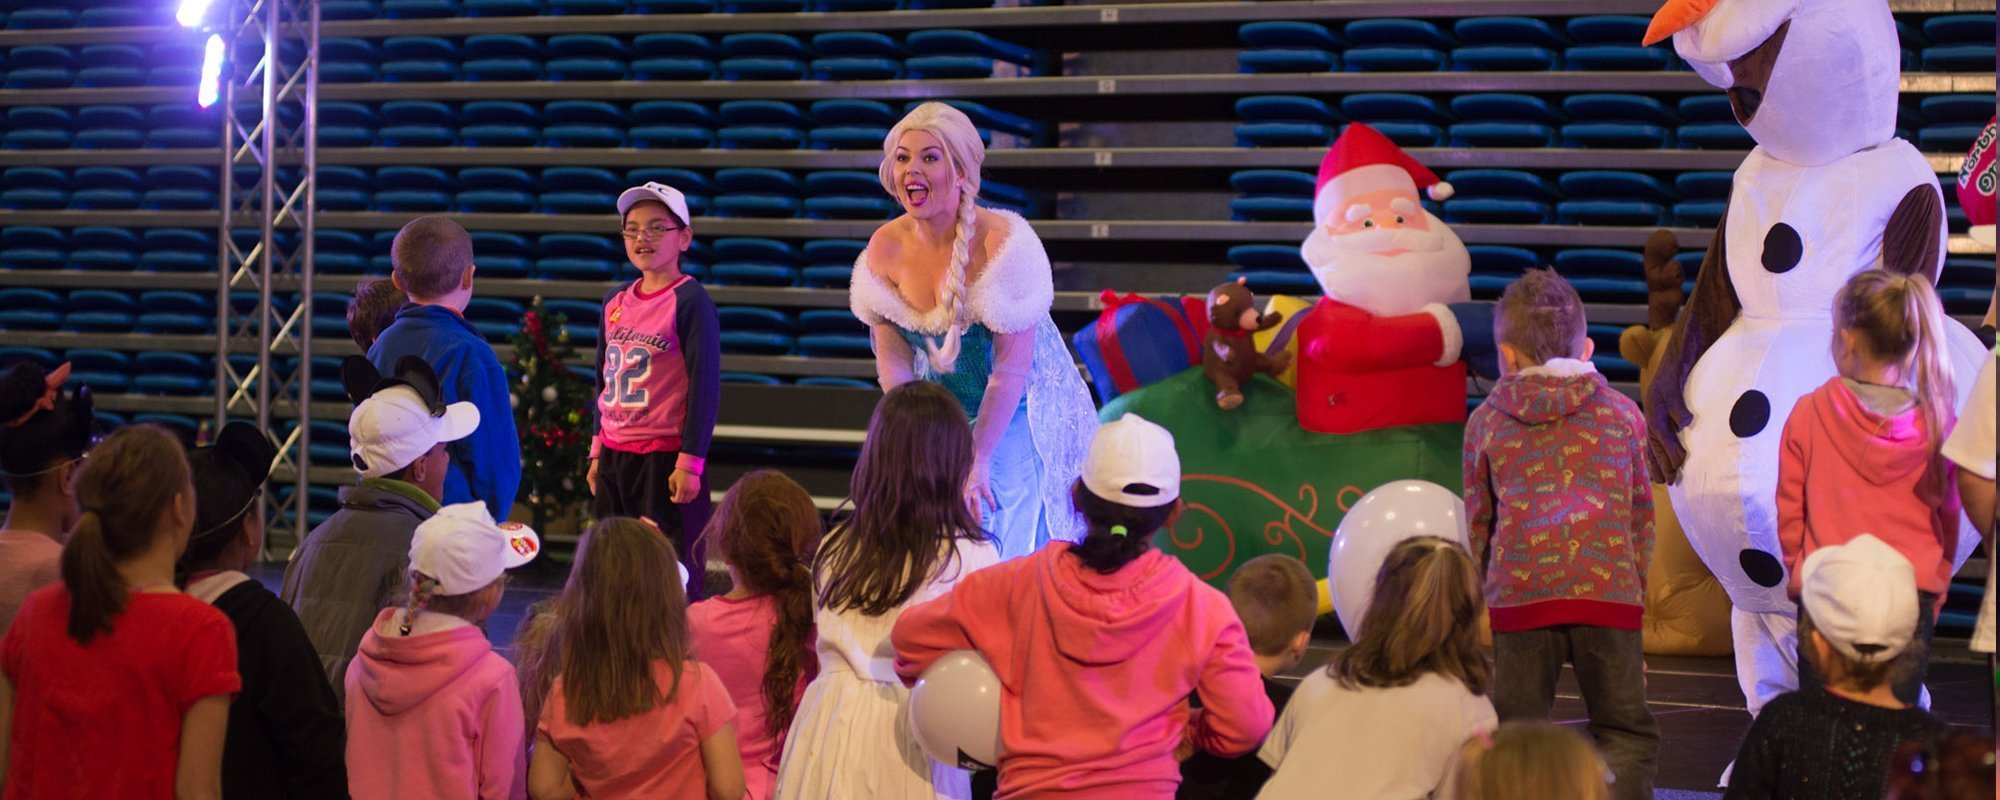 Interactive performance for the kids